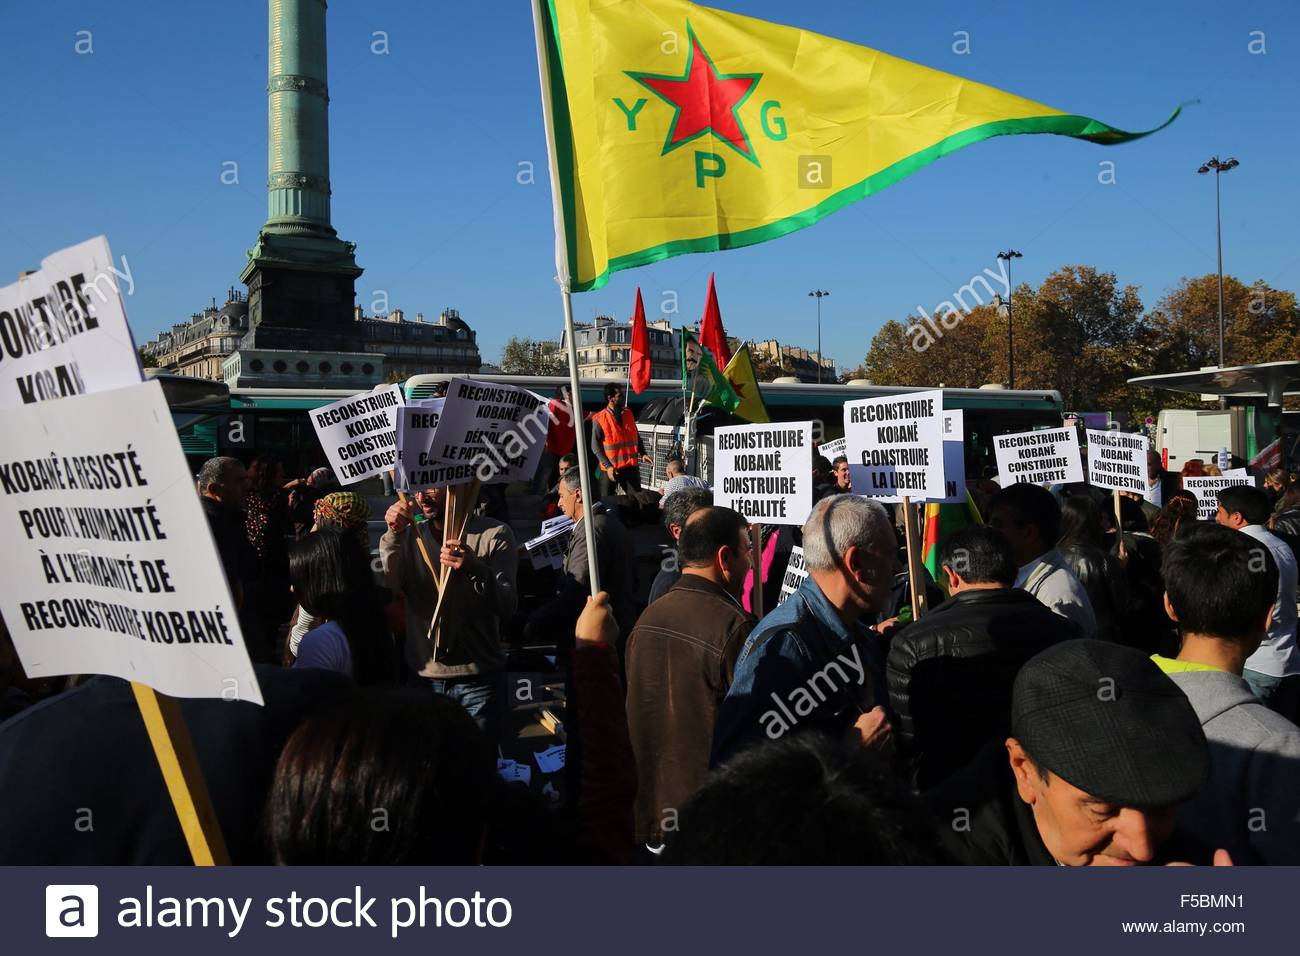 Paris, France. novembre 1st, 2015. FRANCE, Paris: People attend a pro kurdish demonstration in support of Kobane, Stock Photo